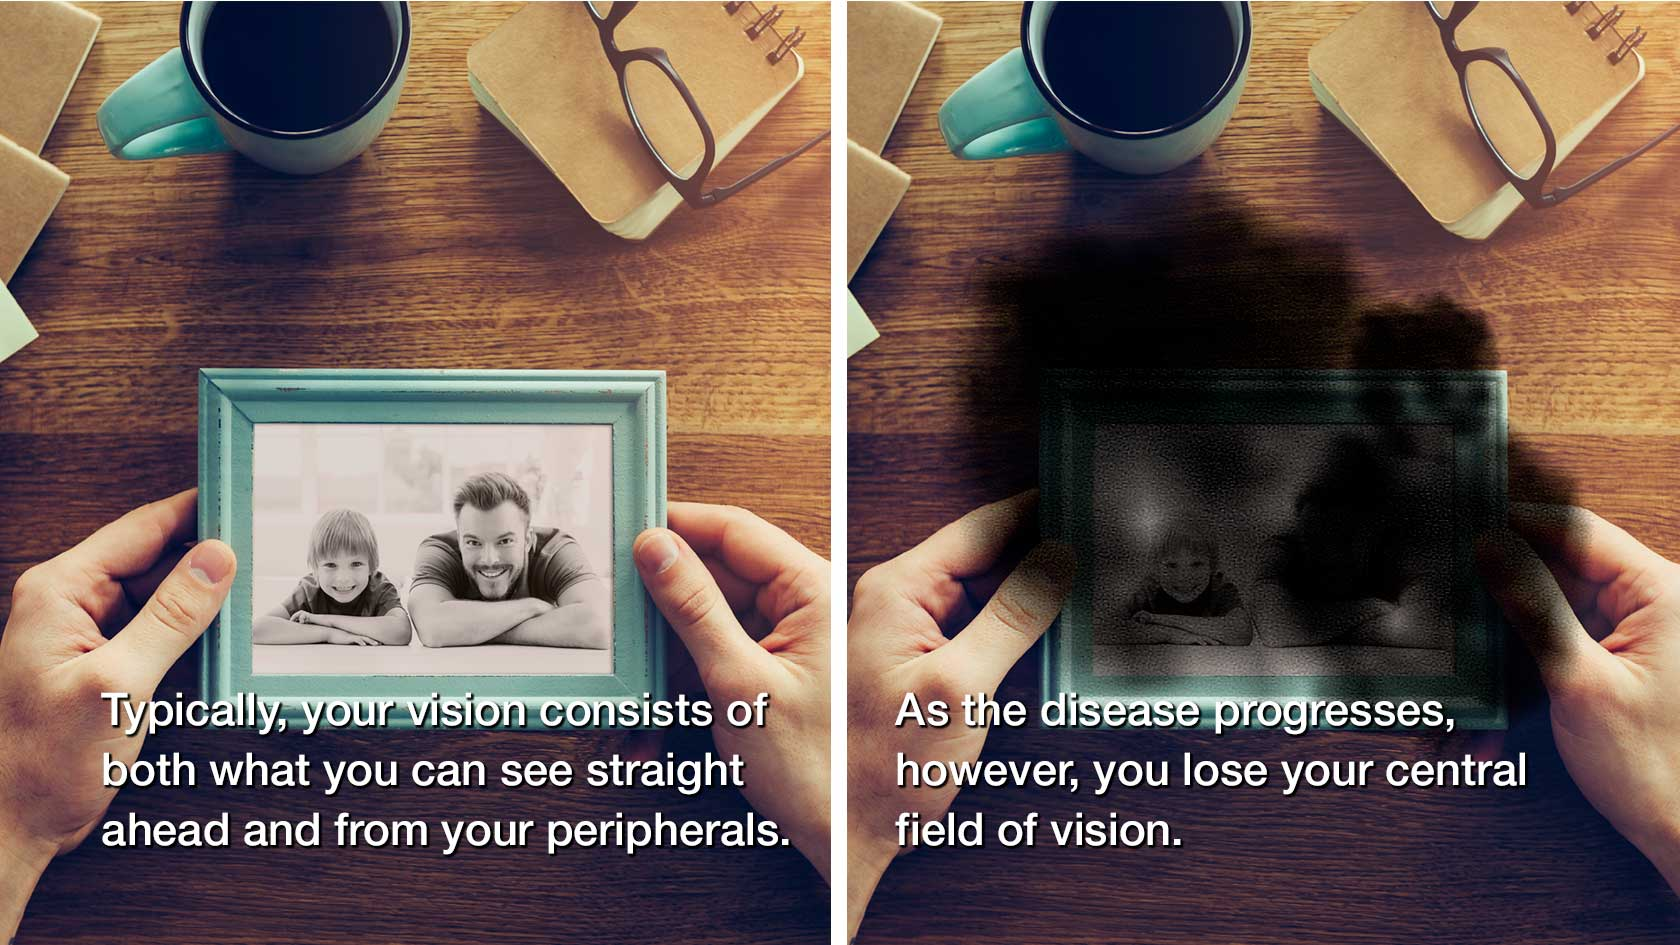 Normal vision vs. vision affected by macular degeneration